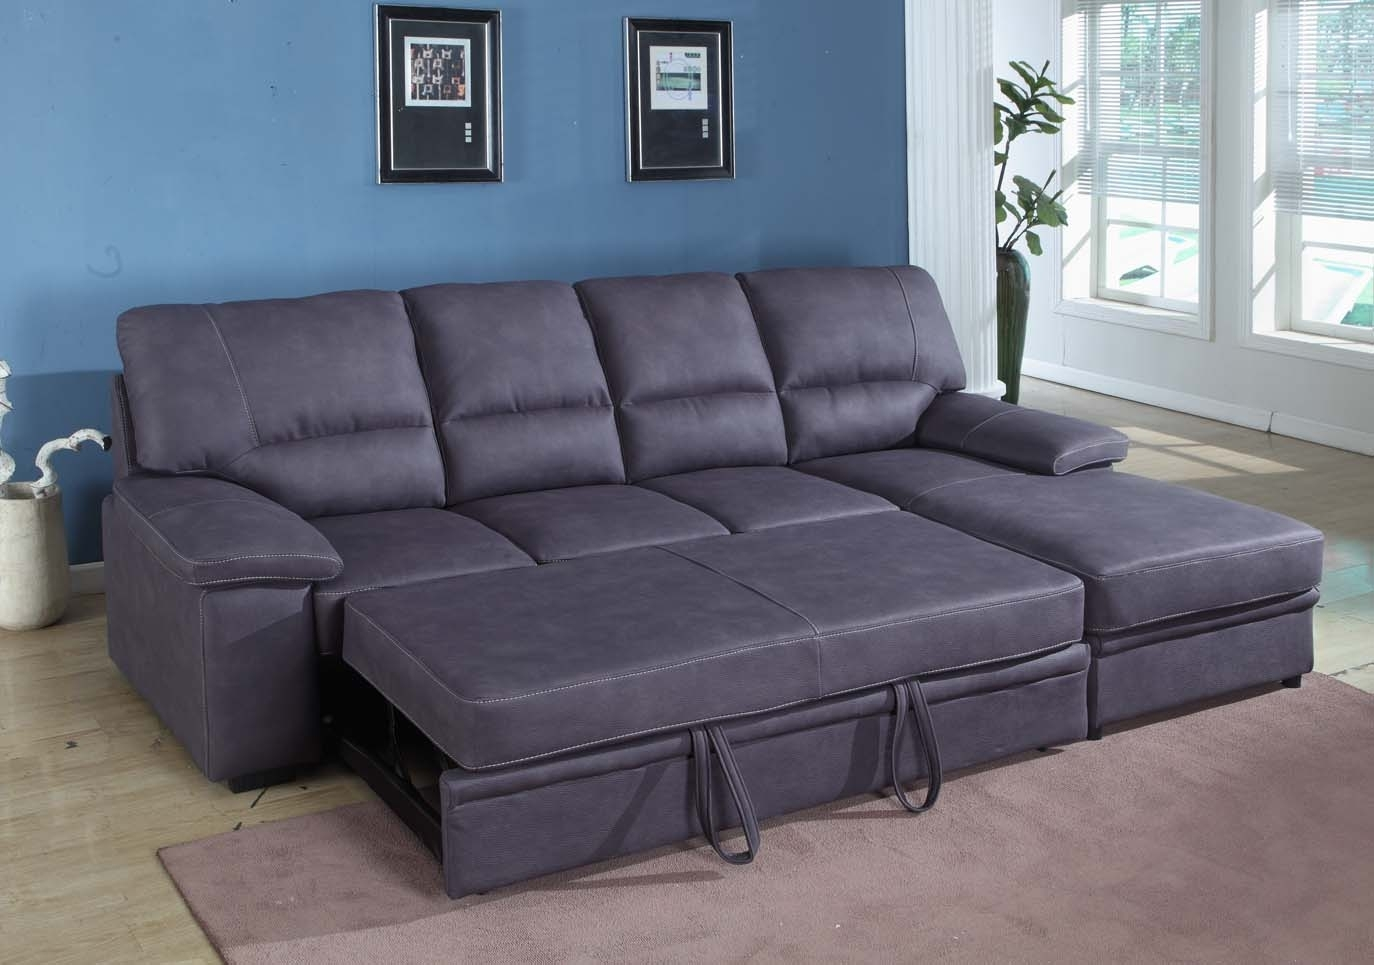 Seating Furniture – Sleeper Sectional Sofa – Pickndecor intended for Lucy Dark Grey 2 Piece Sleeper Sectionals With Laf Chaise (Image 24 of 30)